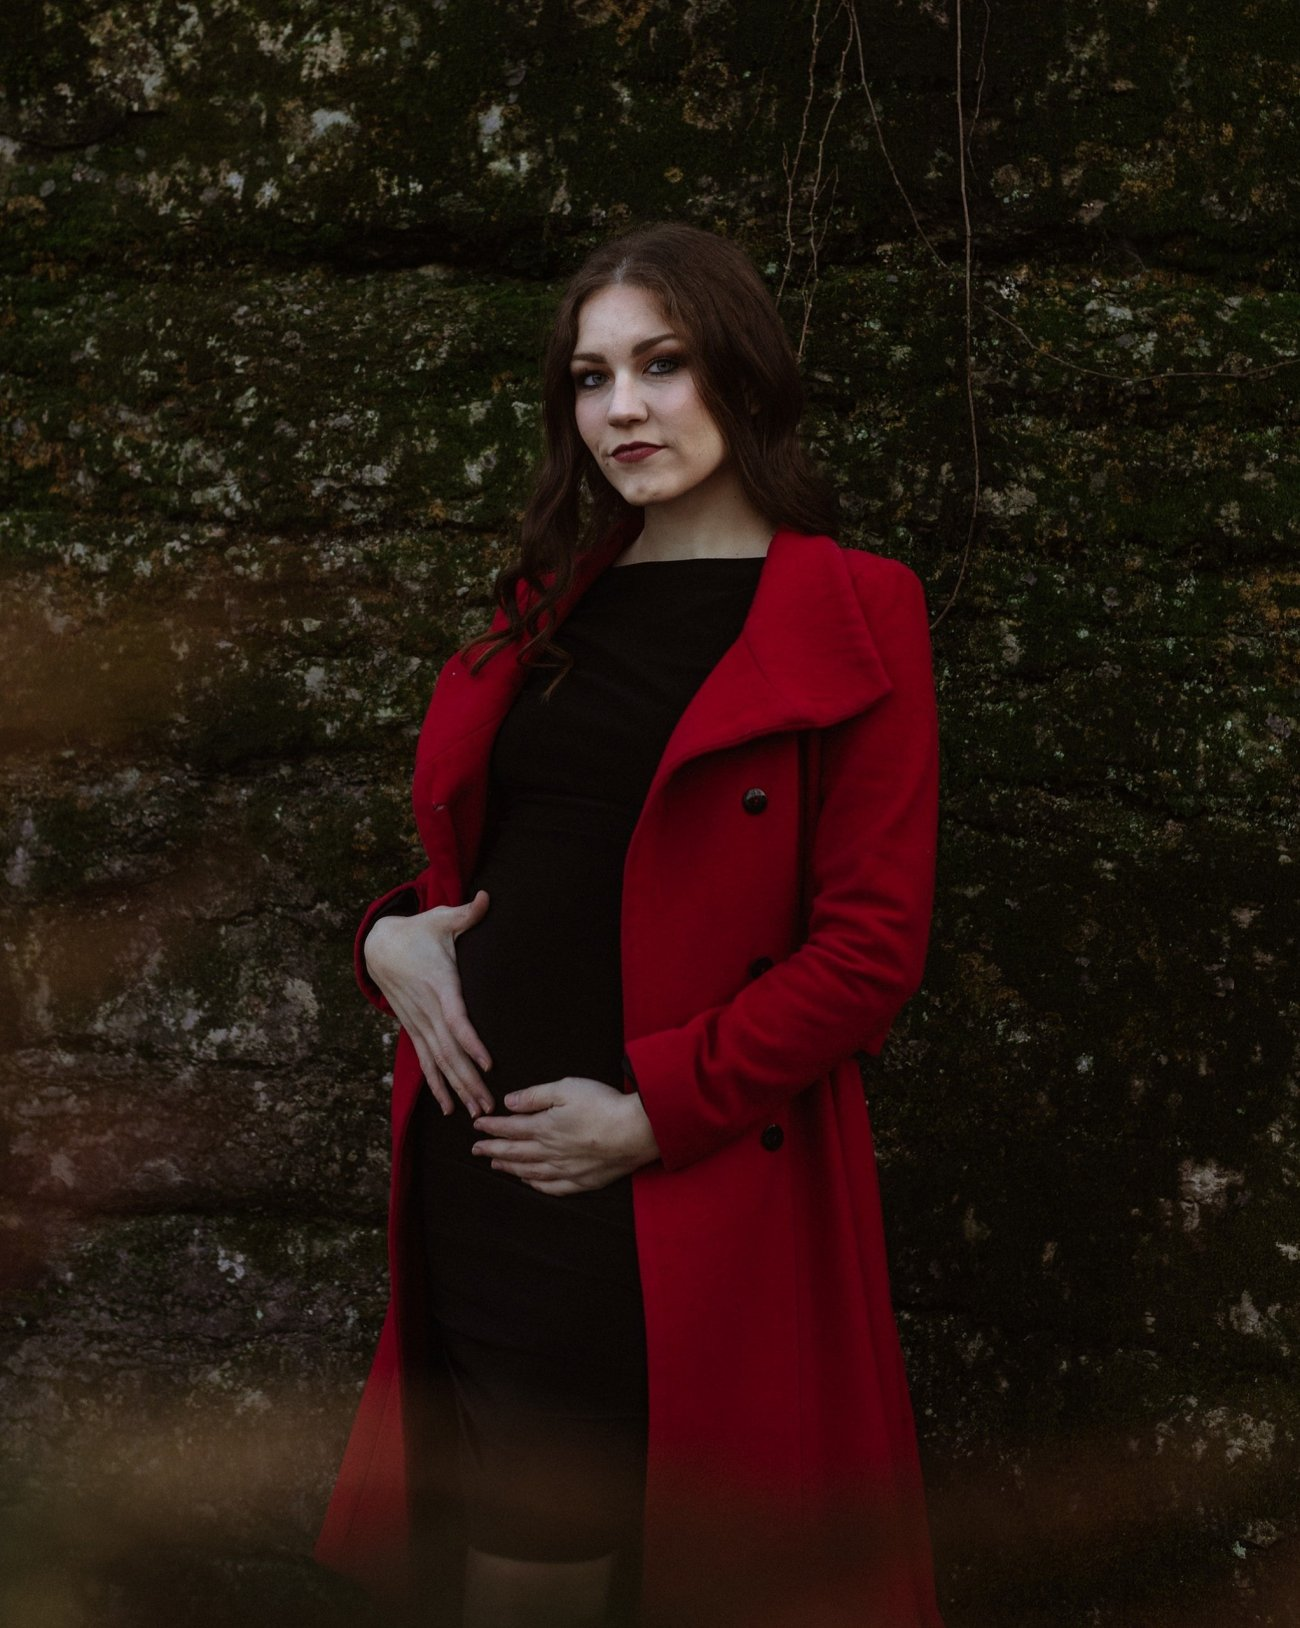 Girl in black dress and red coat holds pregnant belly